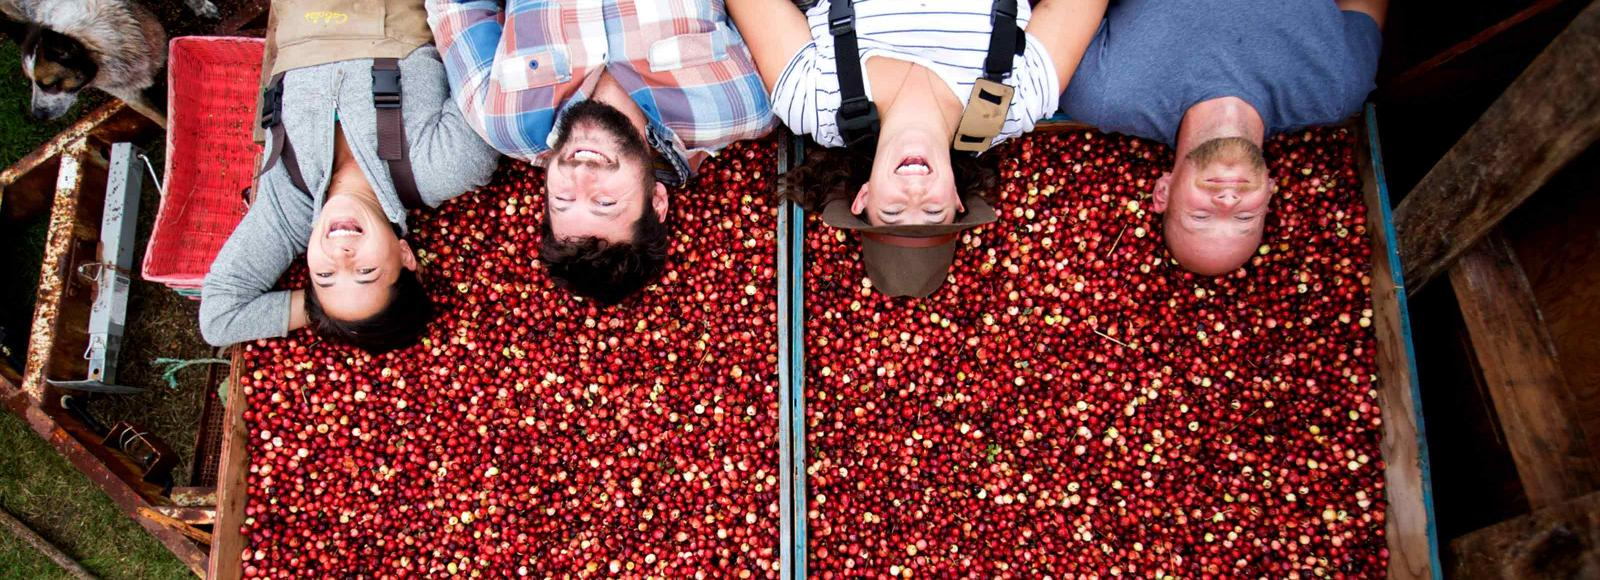 four people laughing lying down on top of colorful red cranberry harvest